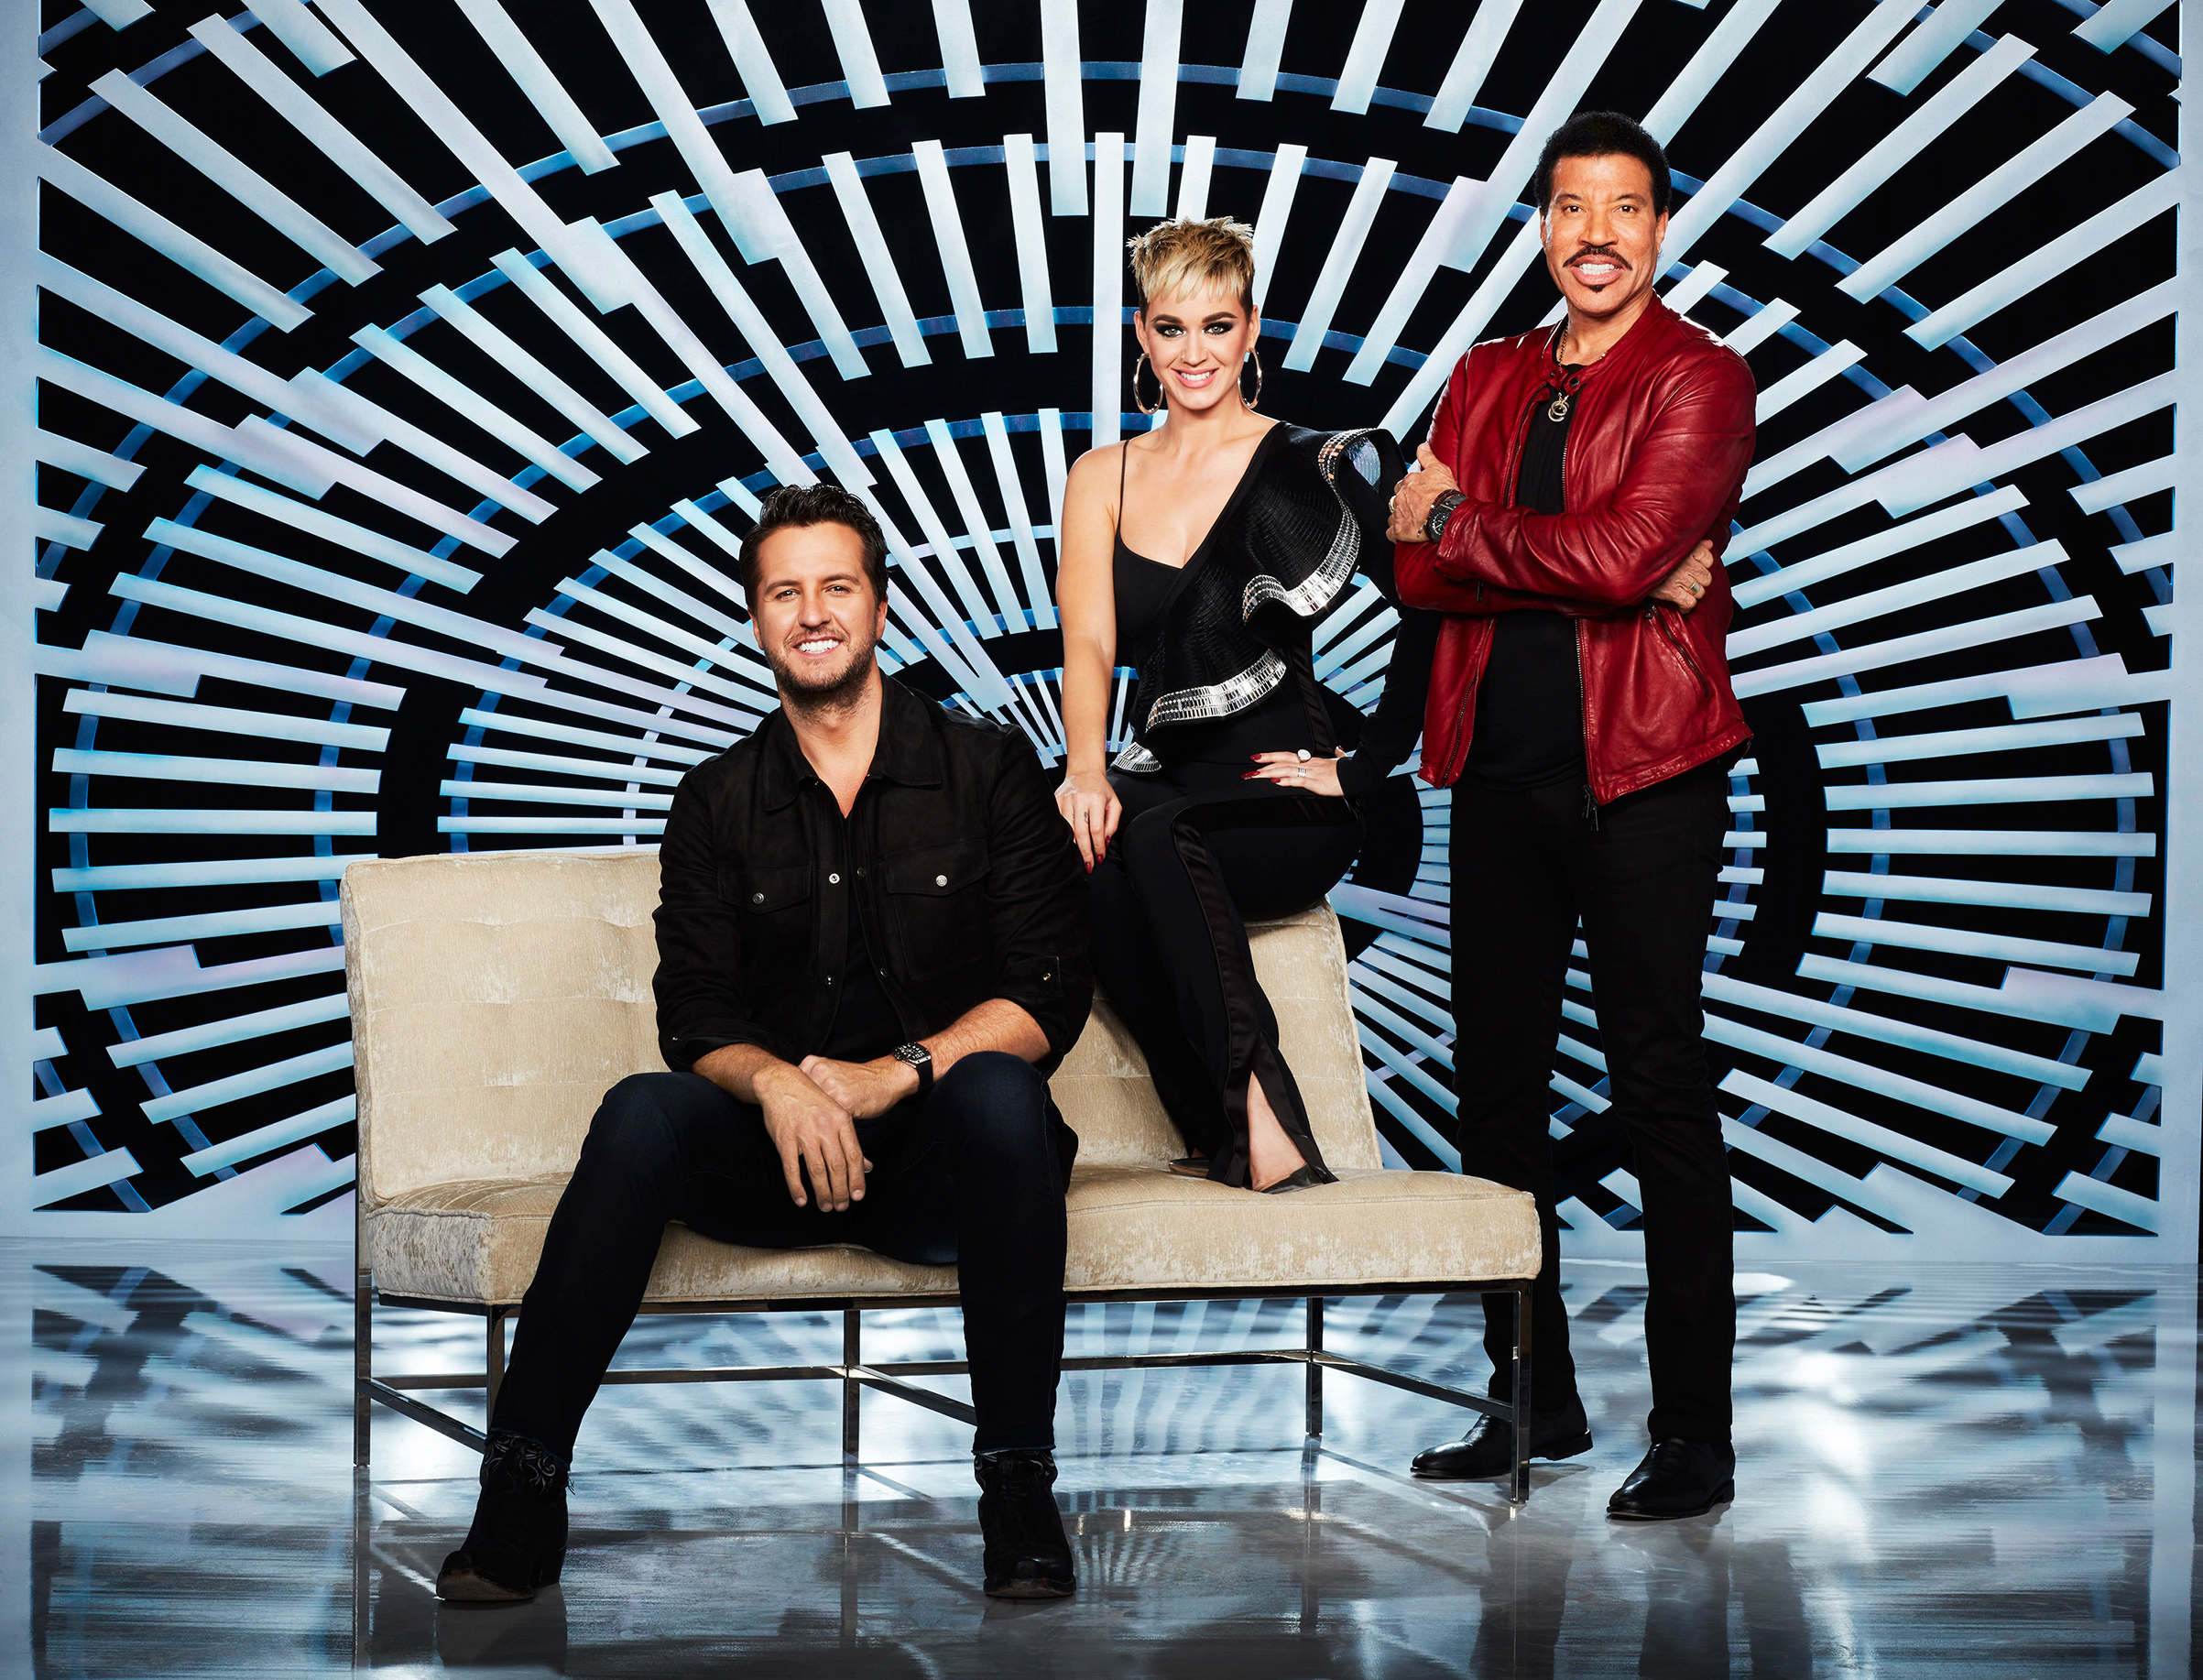 Luke Bryan, Katy Perry and Lionel Richie will counsel aspiring singers when American Idol returns on March 11 on ABC.